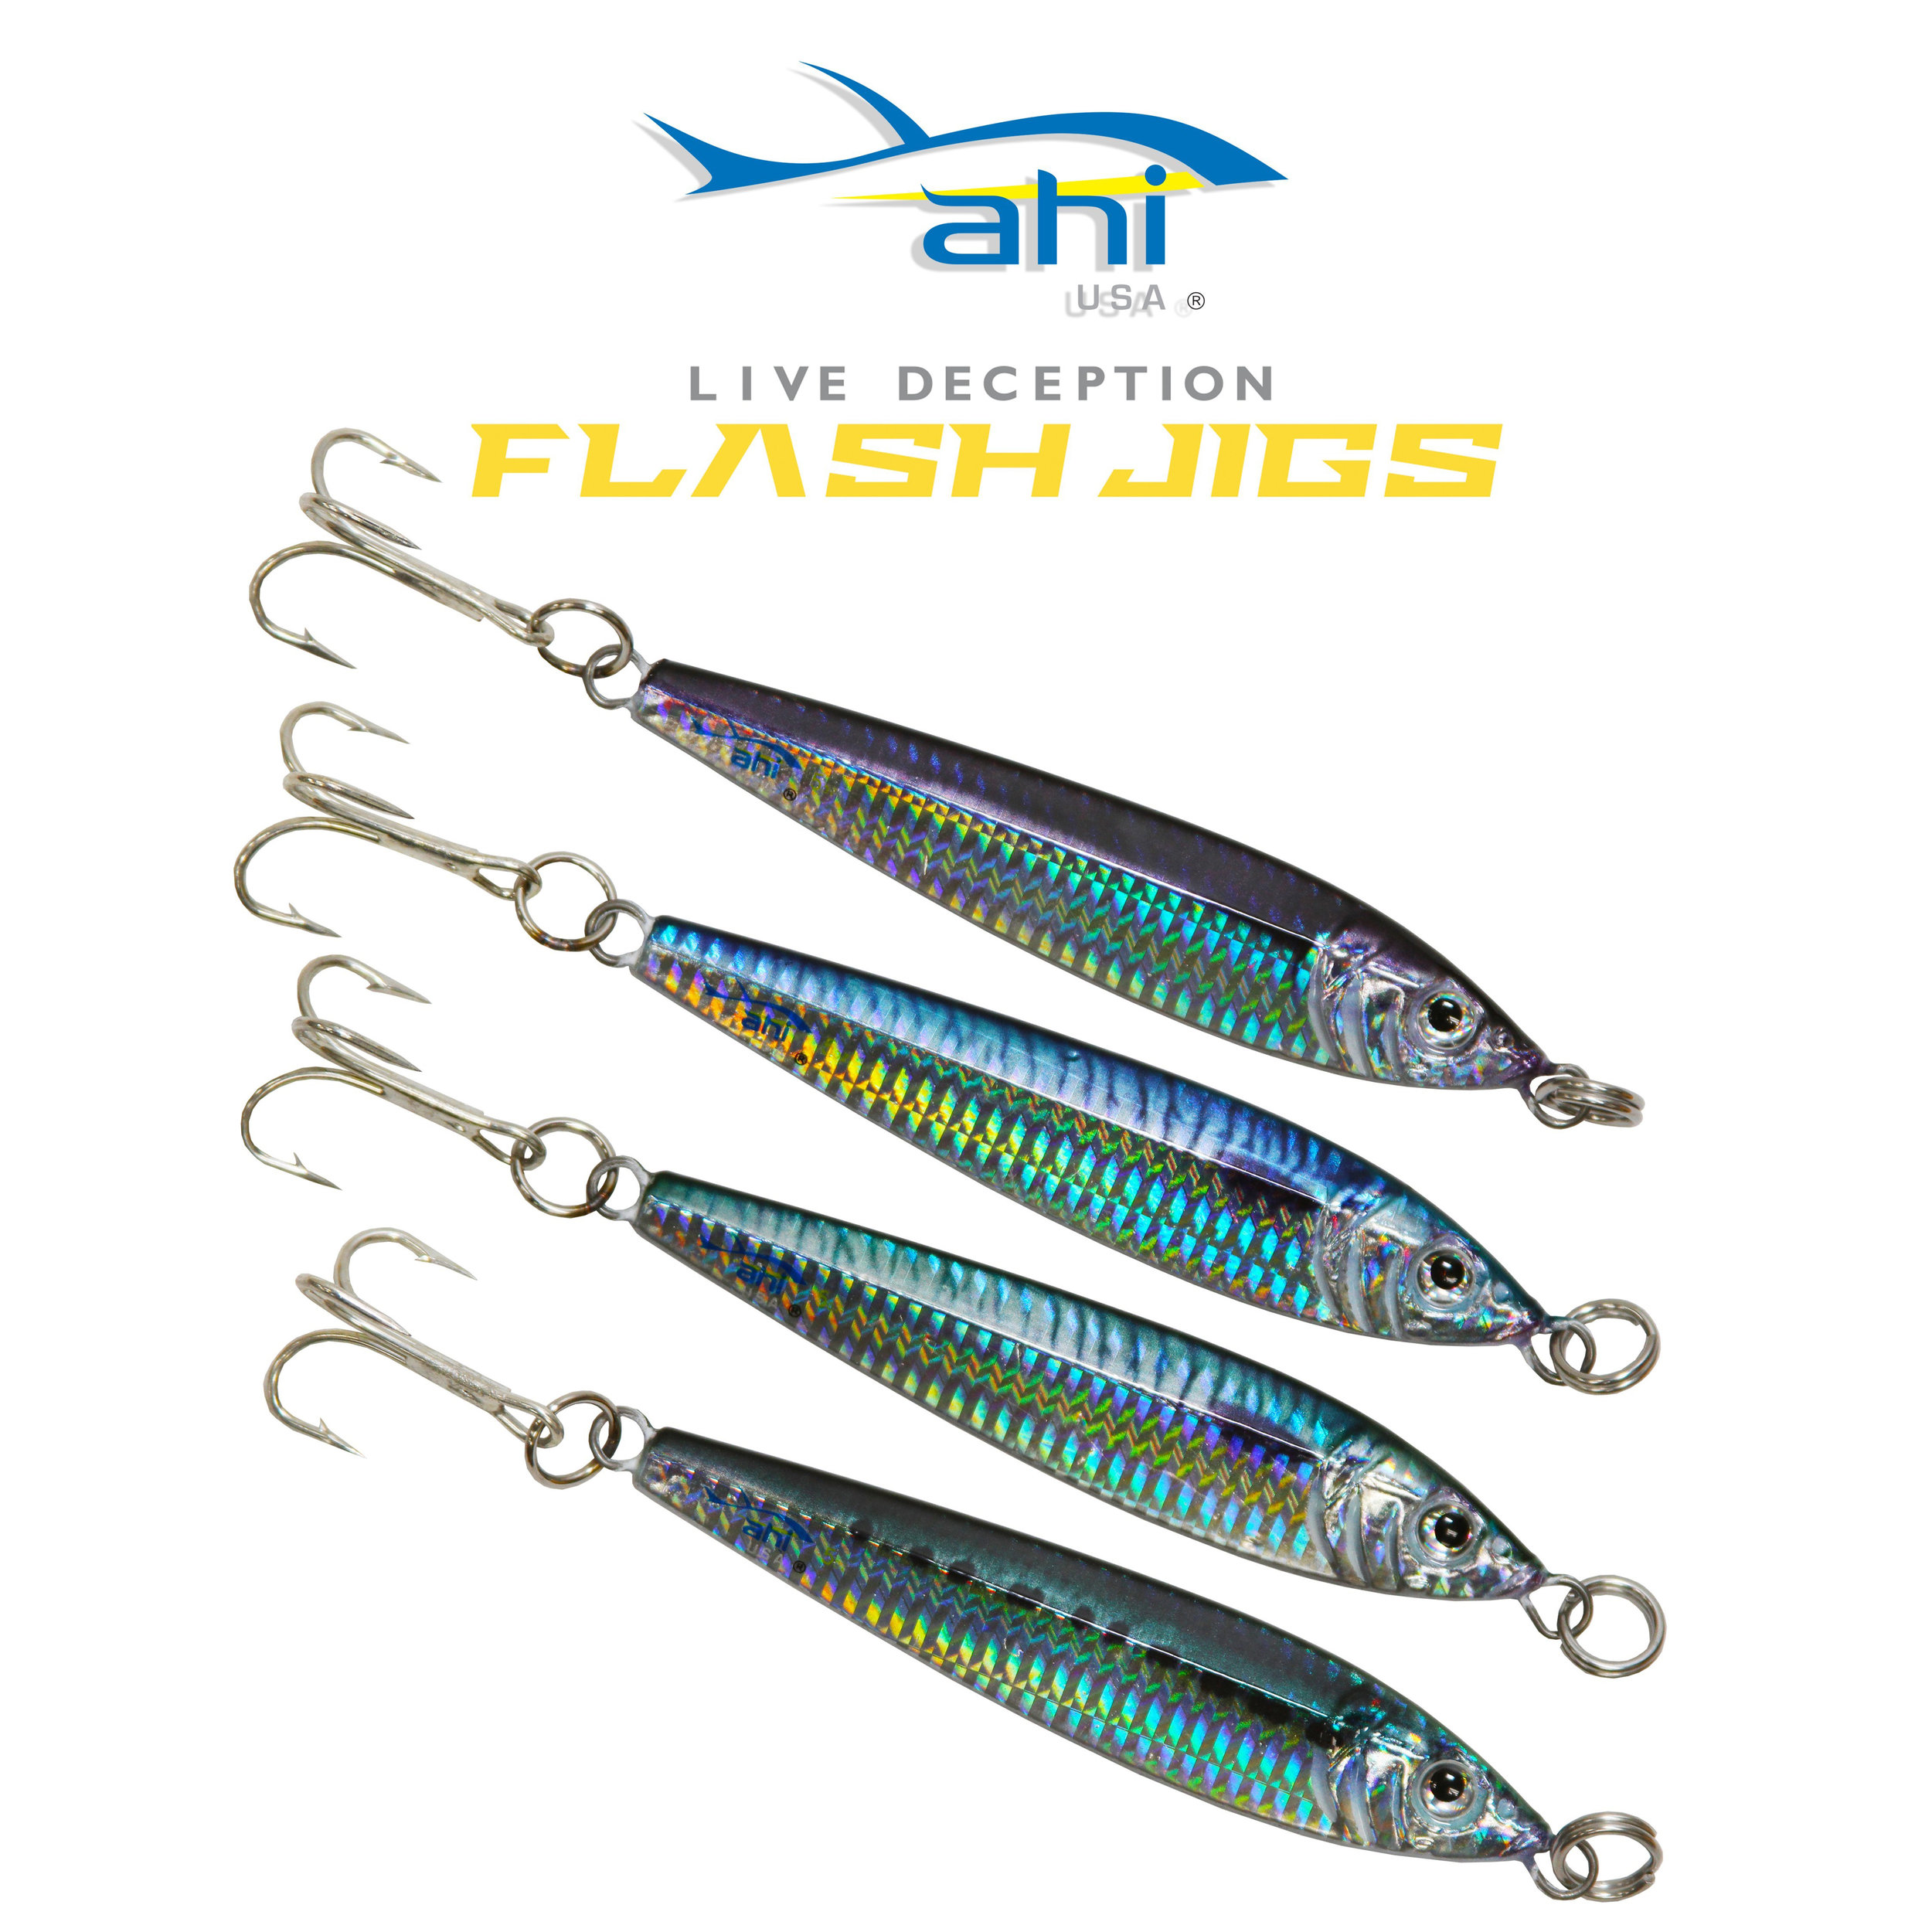 Booth 4234. The result of combining the latest technology in image transfer and laser printing with a state of the art 3-D holographic reflective finish. All the realistic baitfish patterns of the Ahi-USA Live Deception Jigs © are matched with a reflective finish which emulates fish scales.